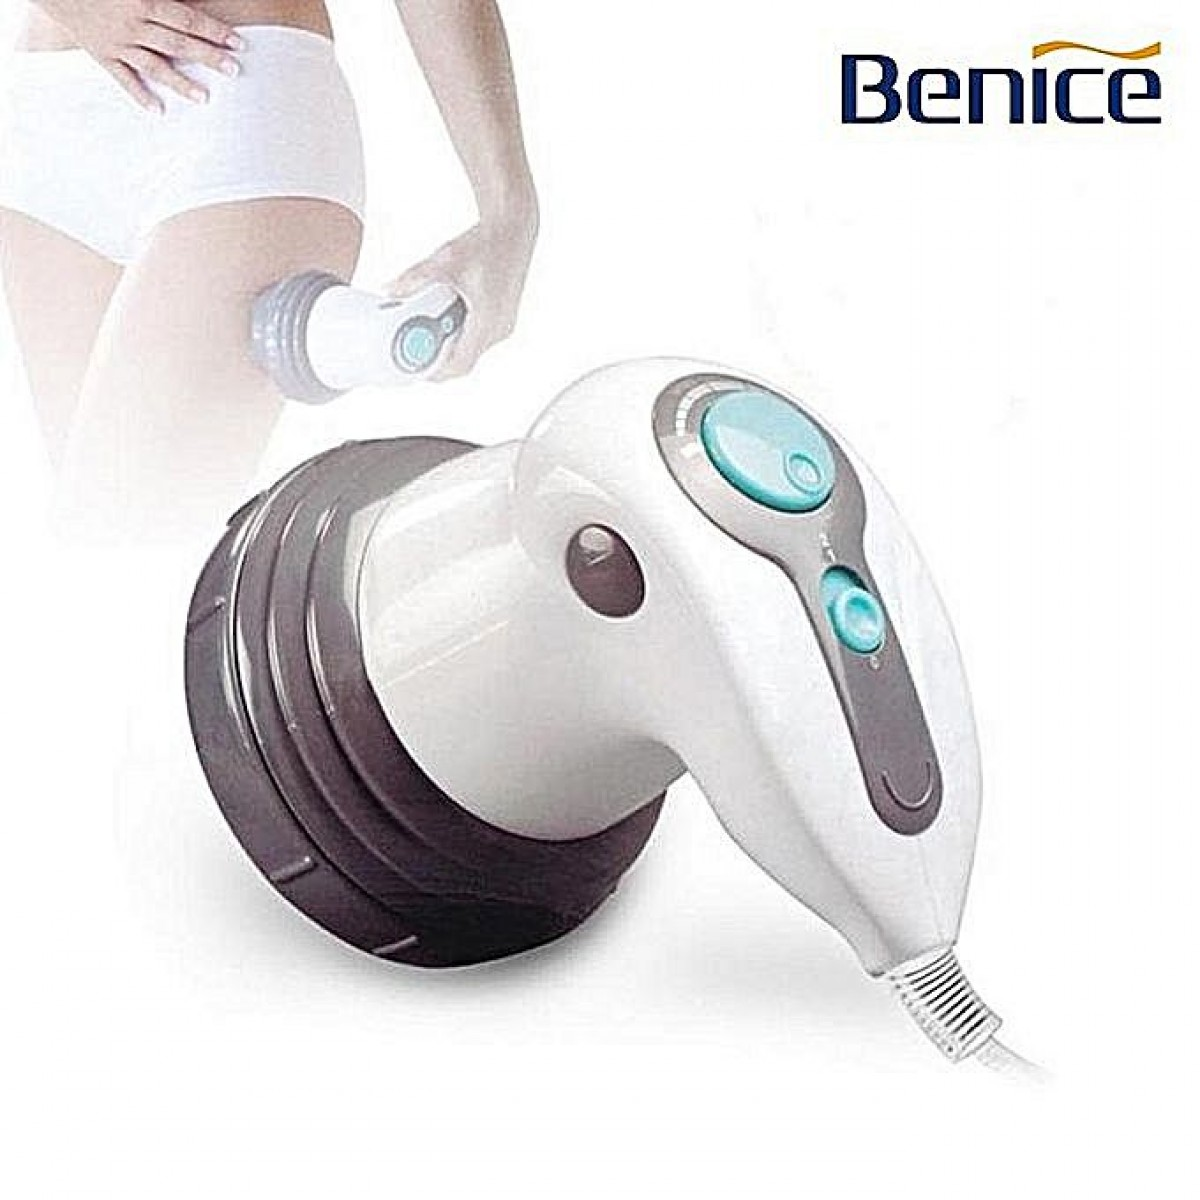 Benice Anti Cellulite Professional 4 in 1 Massager